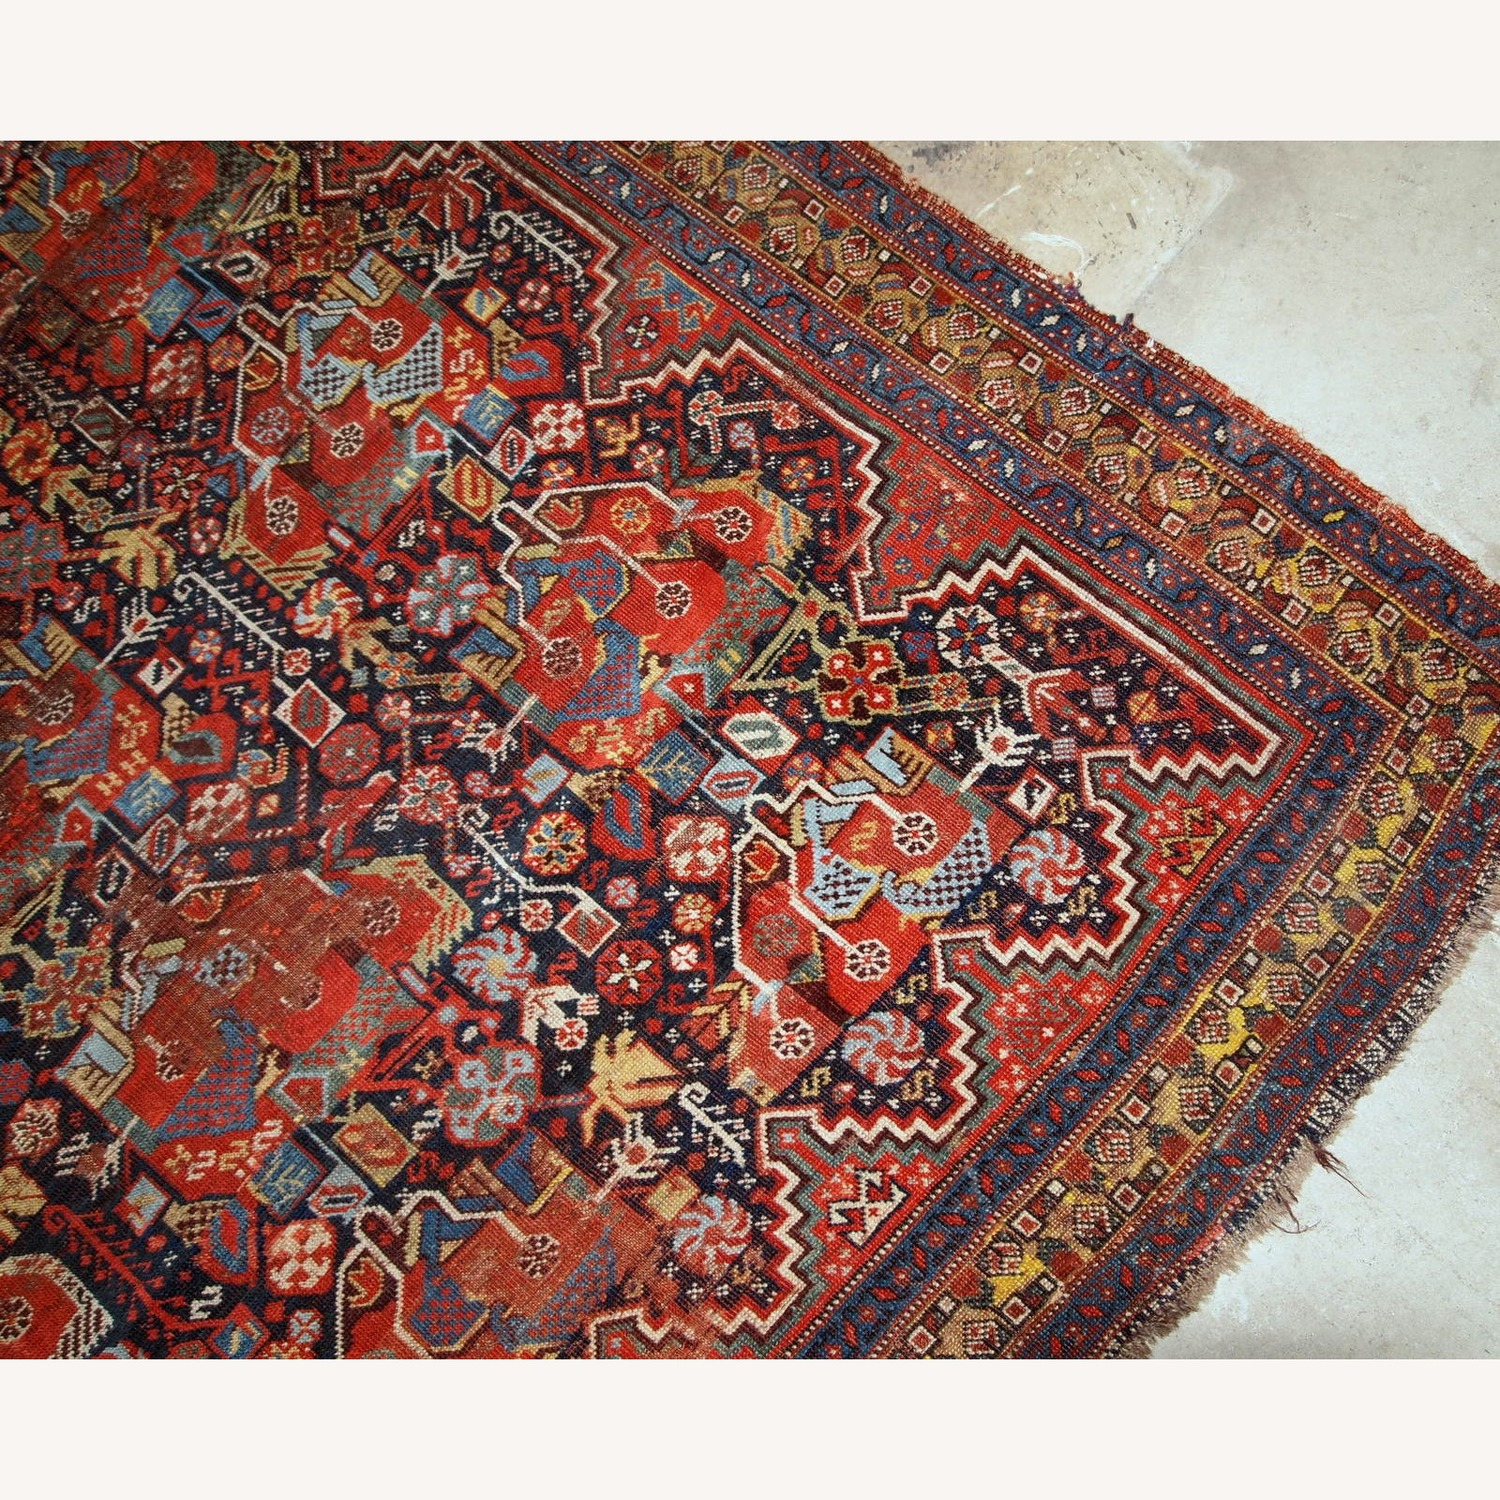 Handmade Antique Collectible Persian Khamseh Rug - image-6